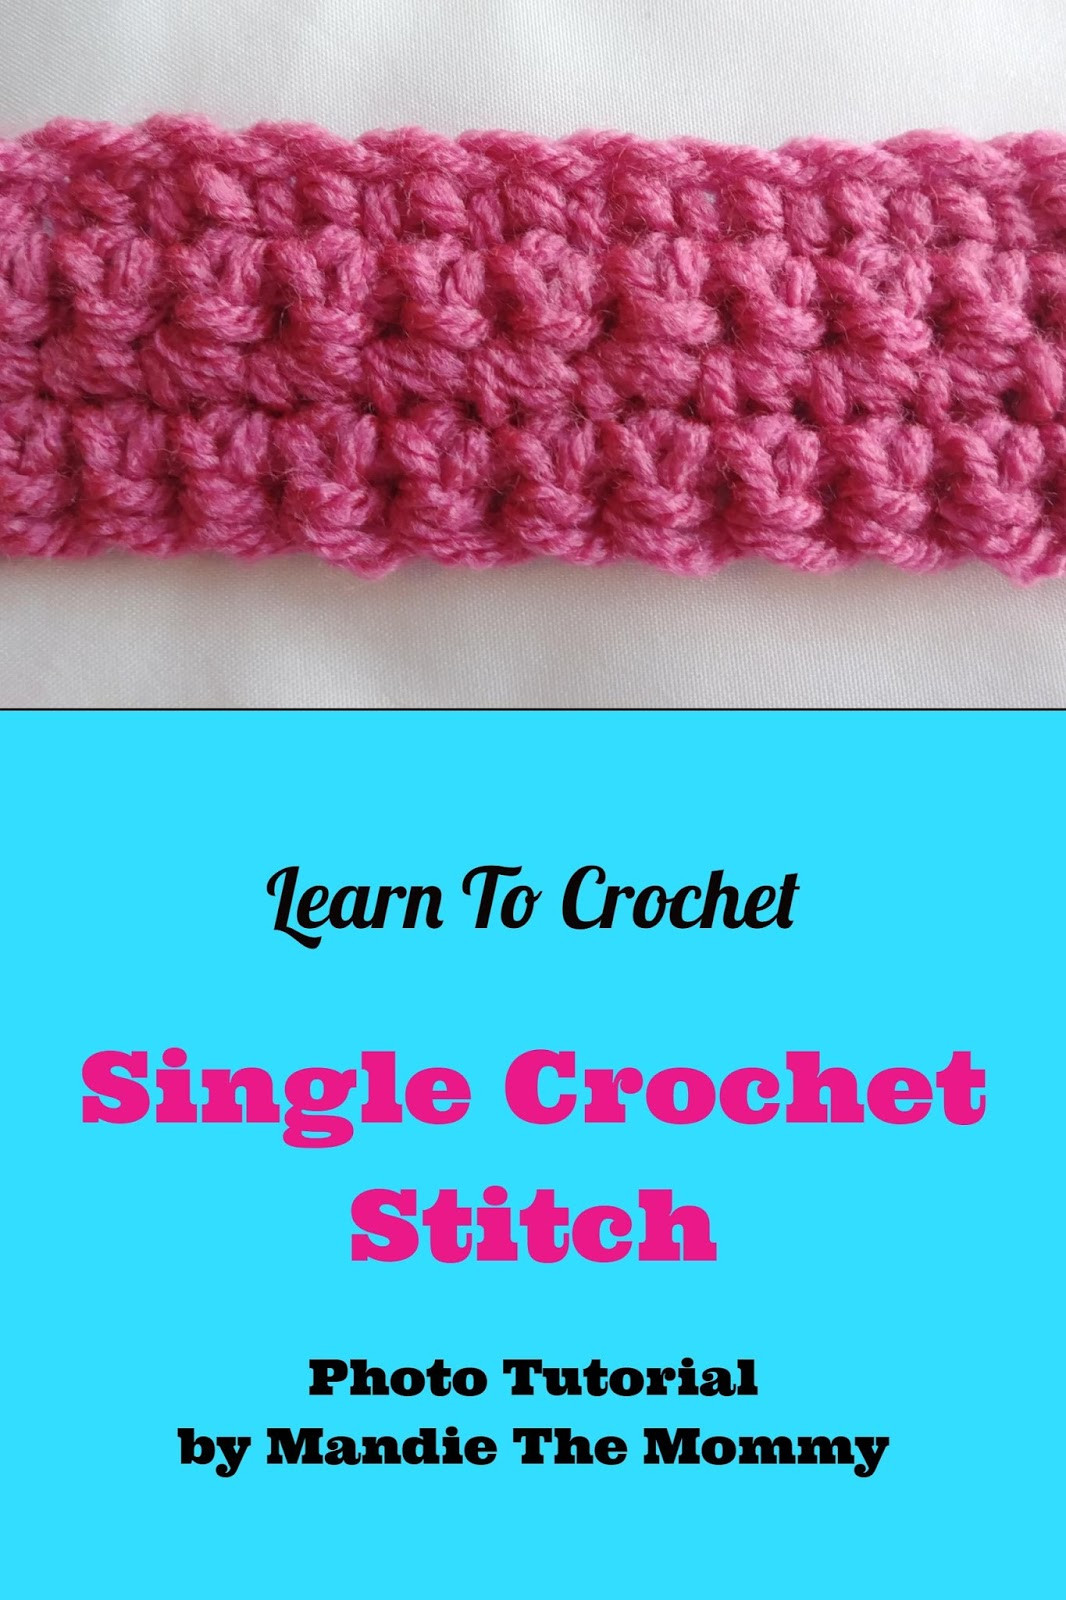 Single Crochet Stitch Awesome Introduction to Crochet Single Crochet and Slip Stitch Of Delightful 40 Pictures Single Crochet Stitch